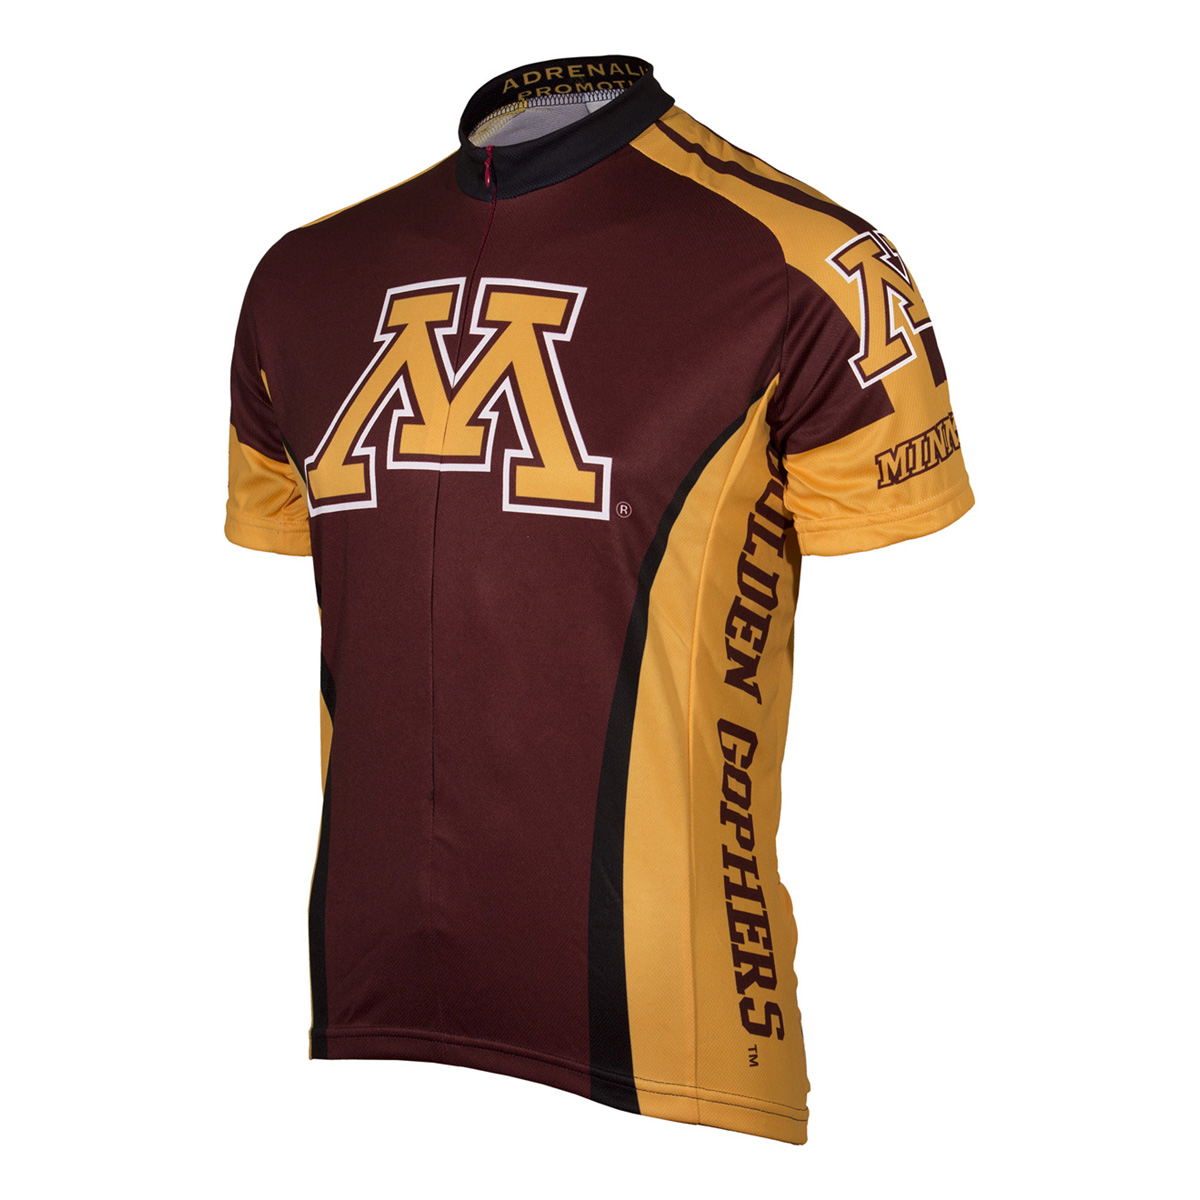 Adrenaline Promotions University of Minnesota Golden Gopher Cycling Jersey